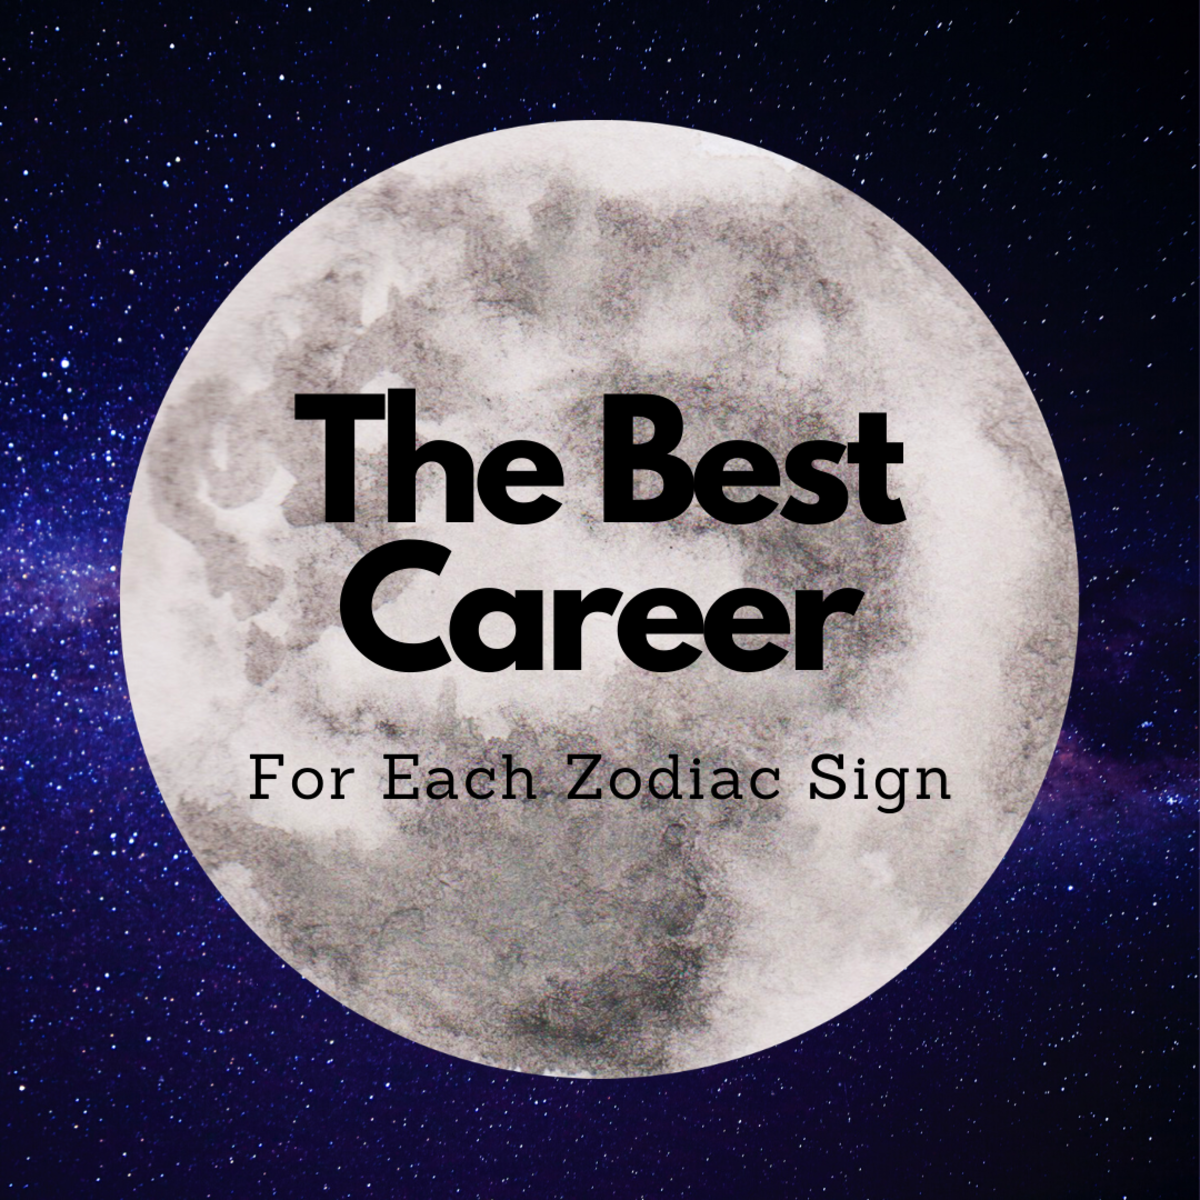 Learn which career is best for you based on your sign!